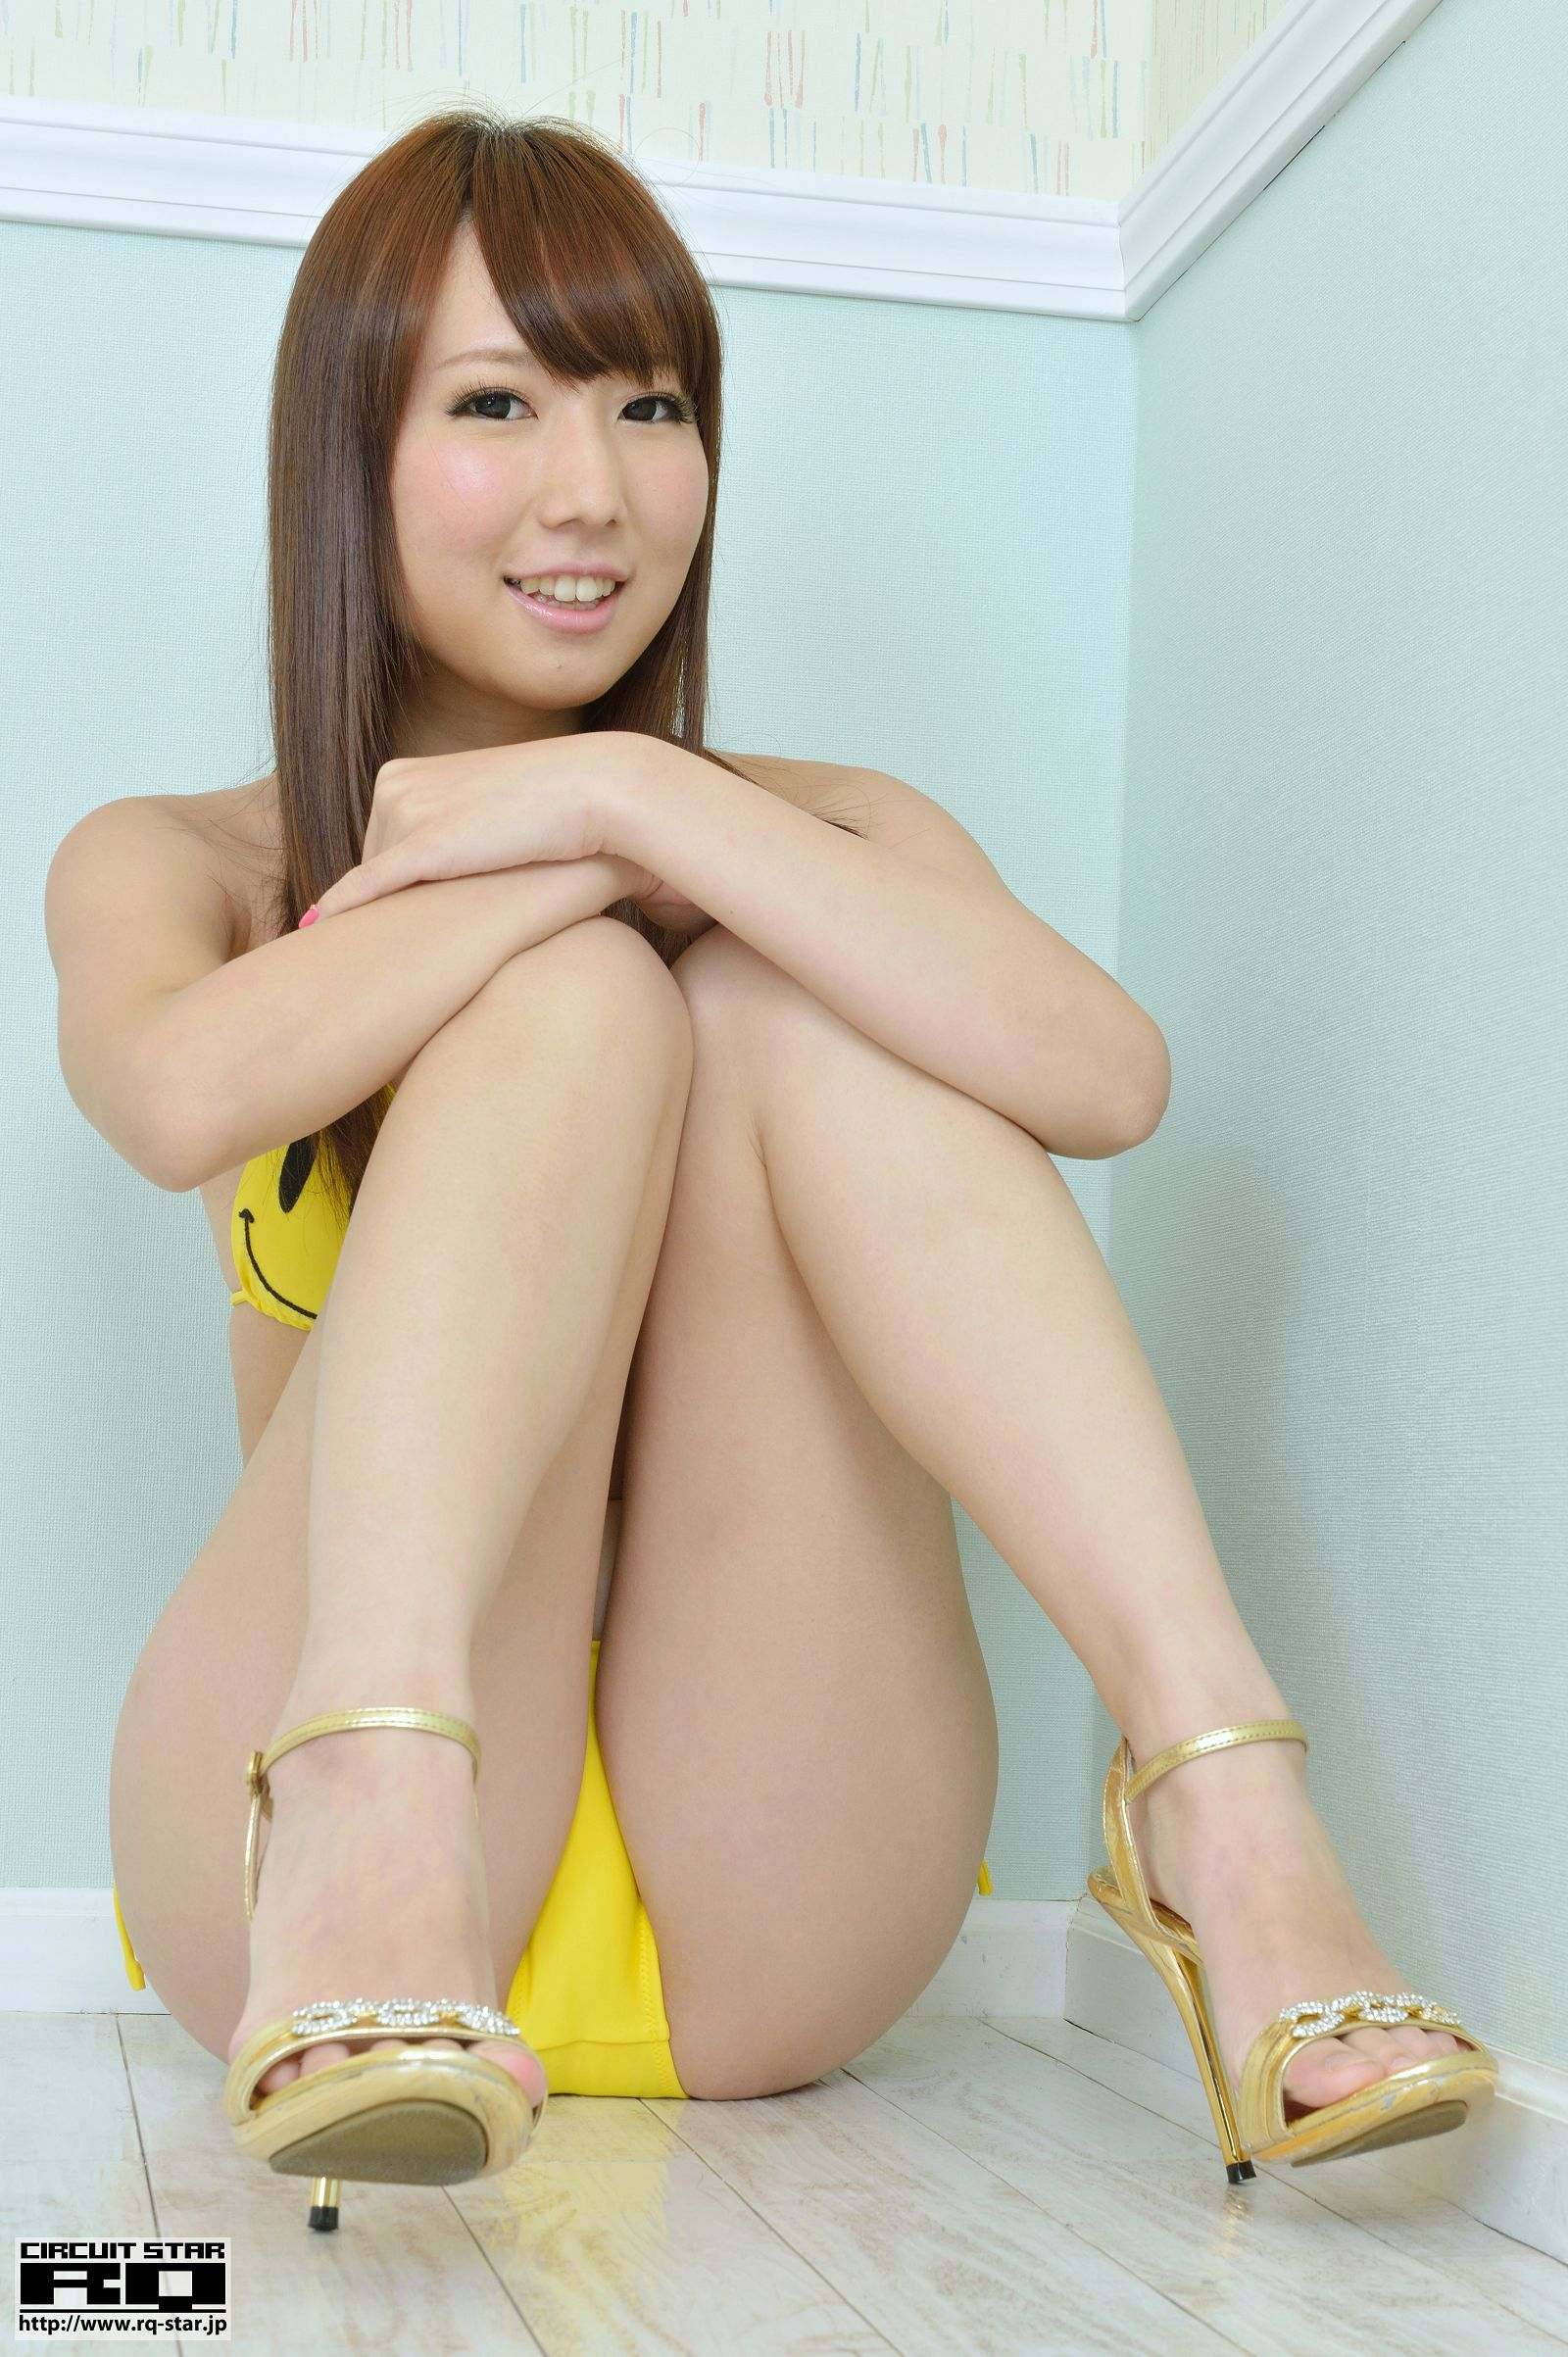 [RQ STAR美女] NO.00994 Nanami Takahashi 高橋七海 Swim Suits[80P] RQ STAR 第2张